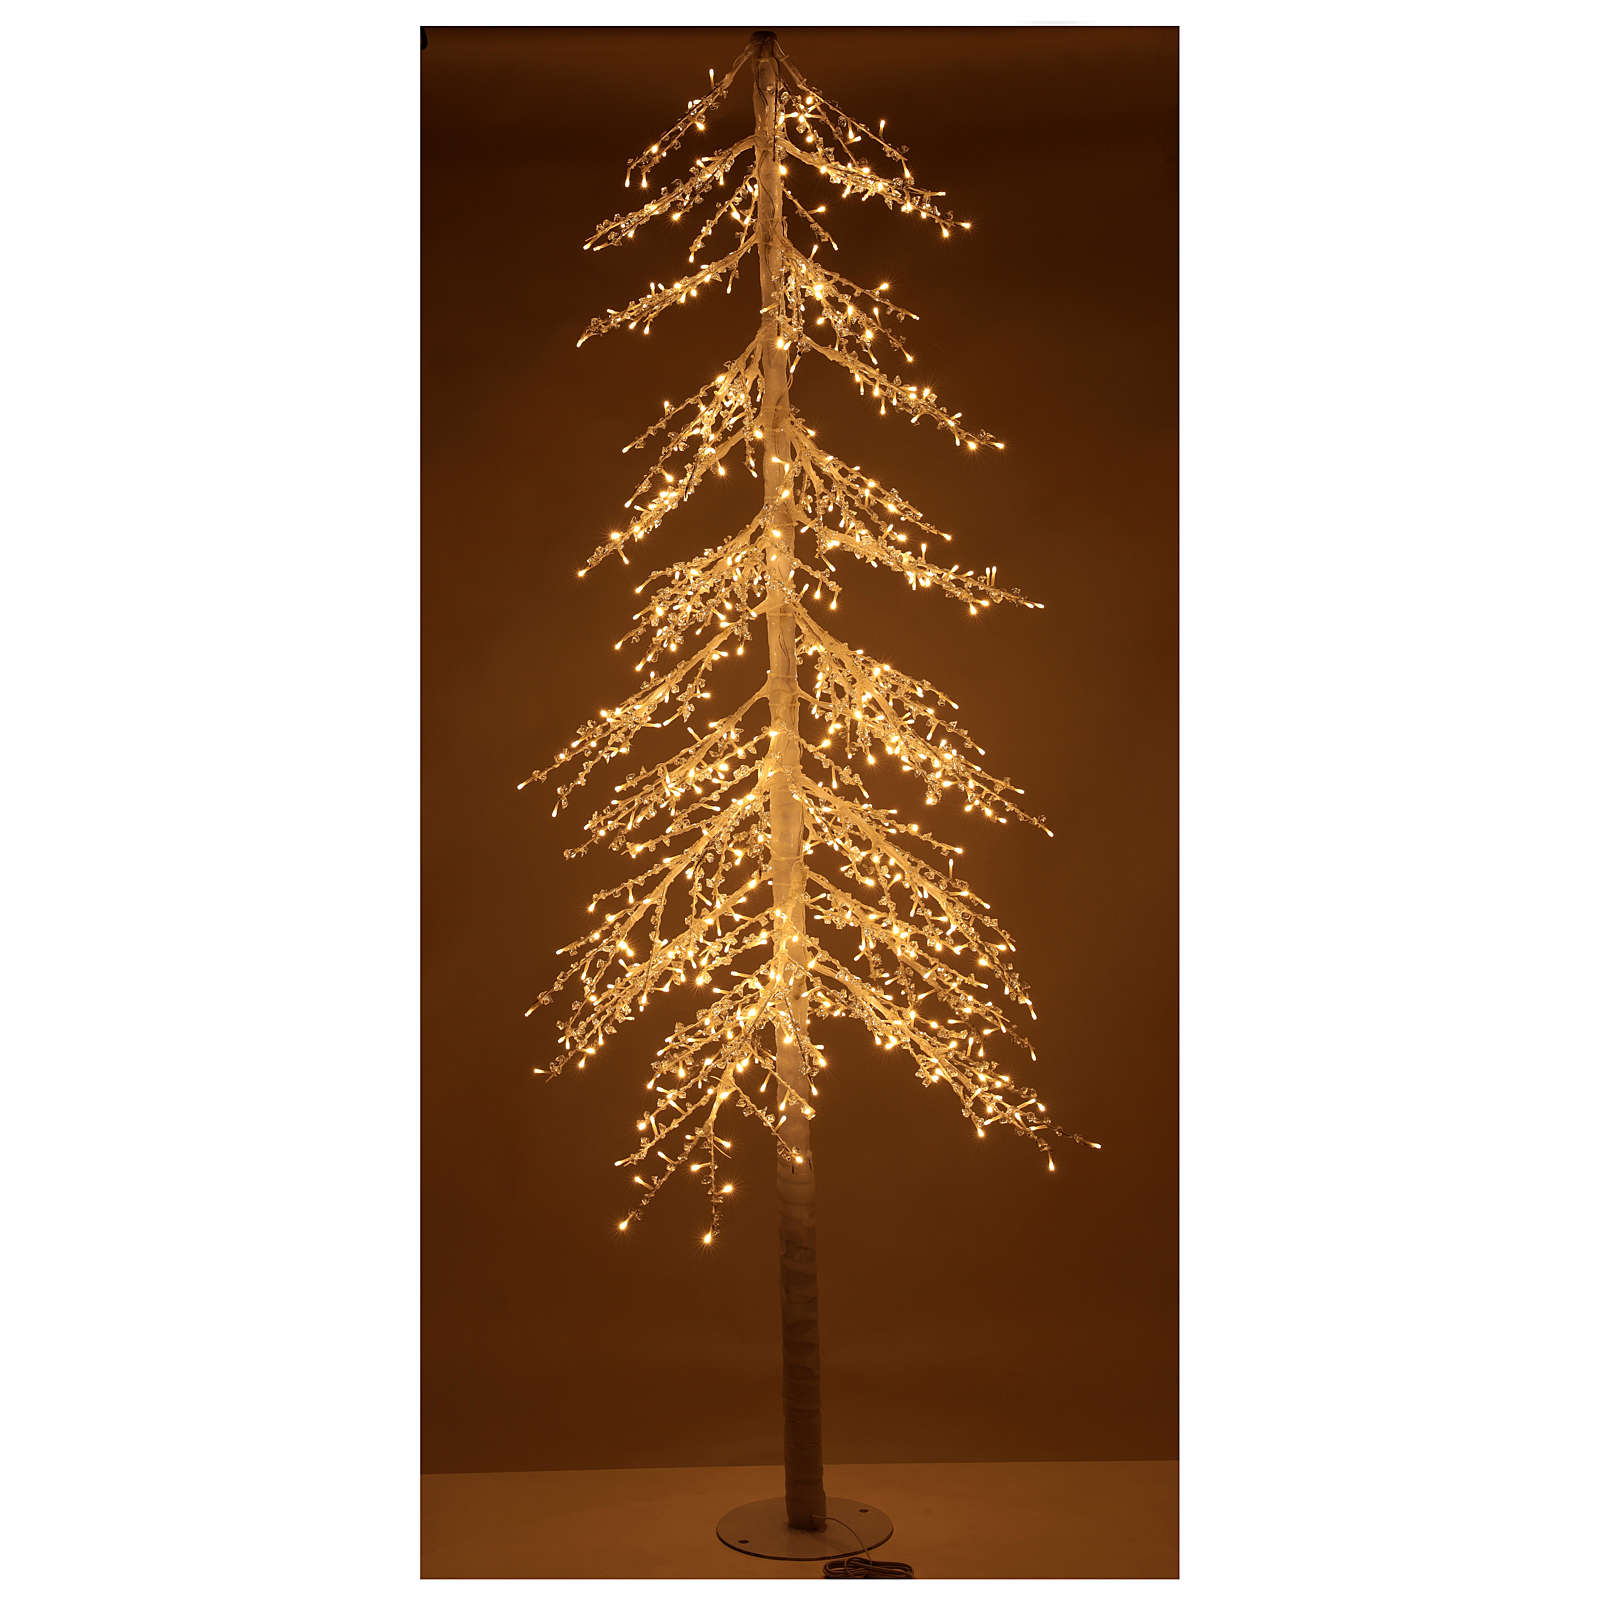 LED Christmas Tree, Diamond, 250 cm 720 LED lights, warm white, outdoor use 3